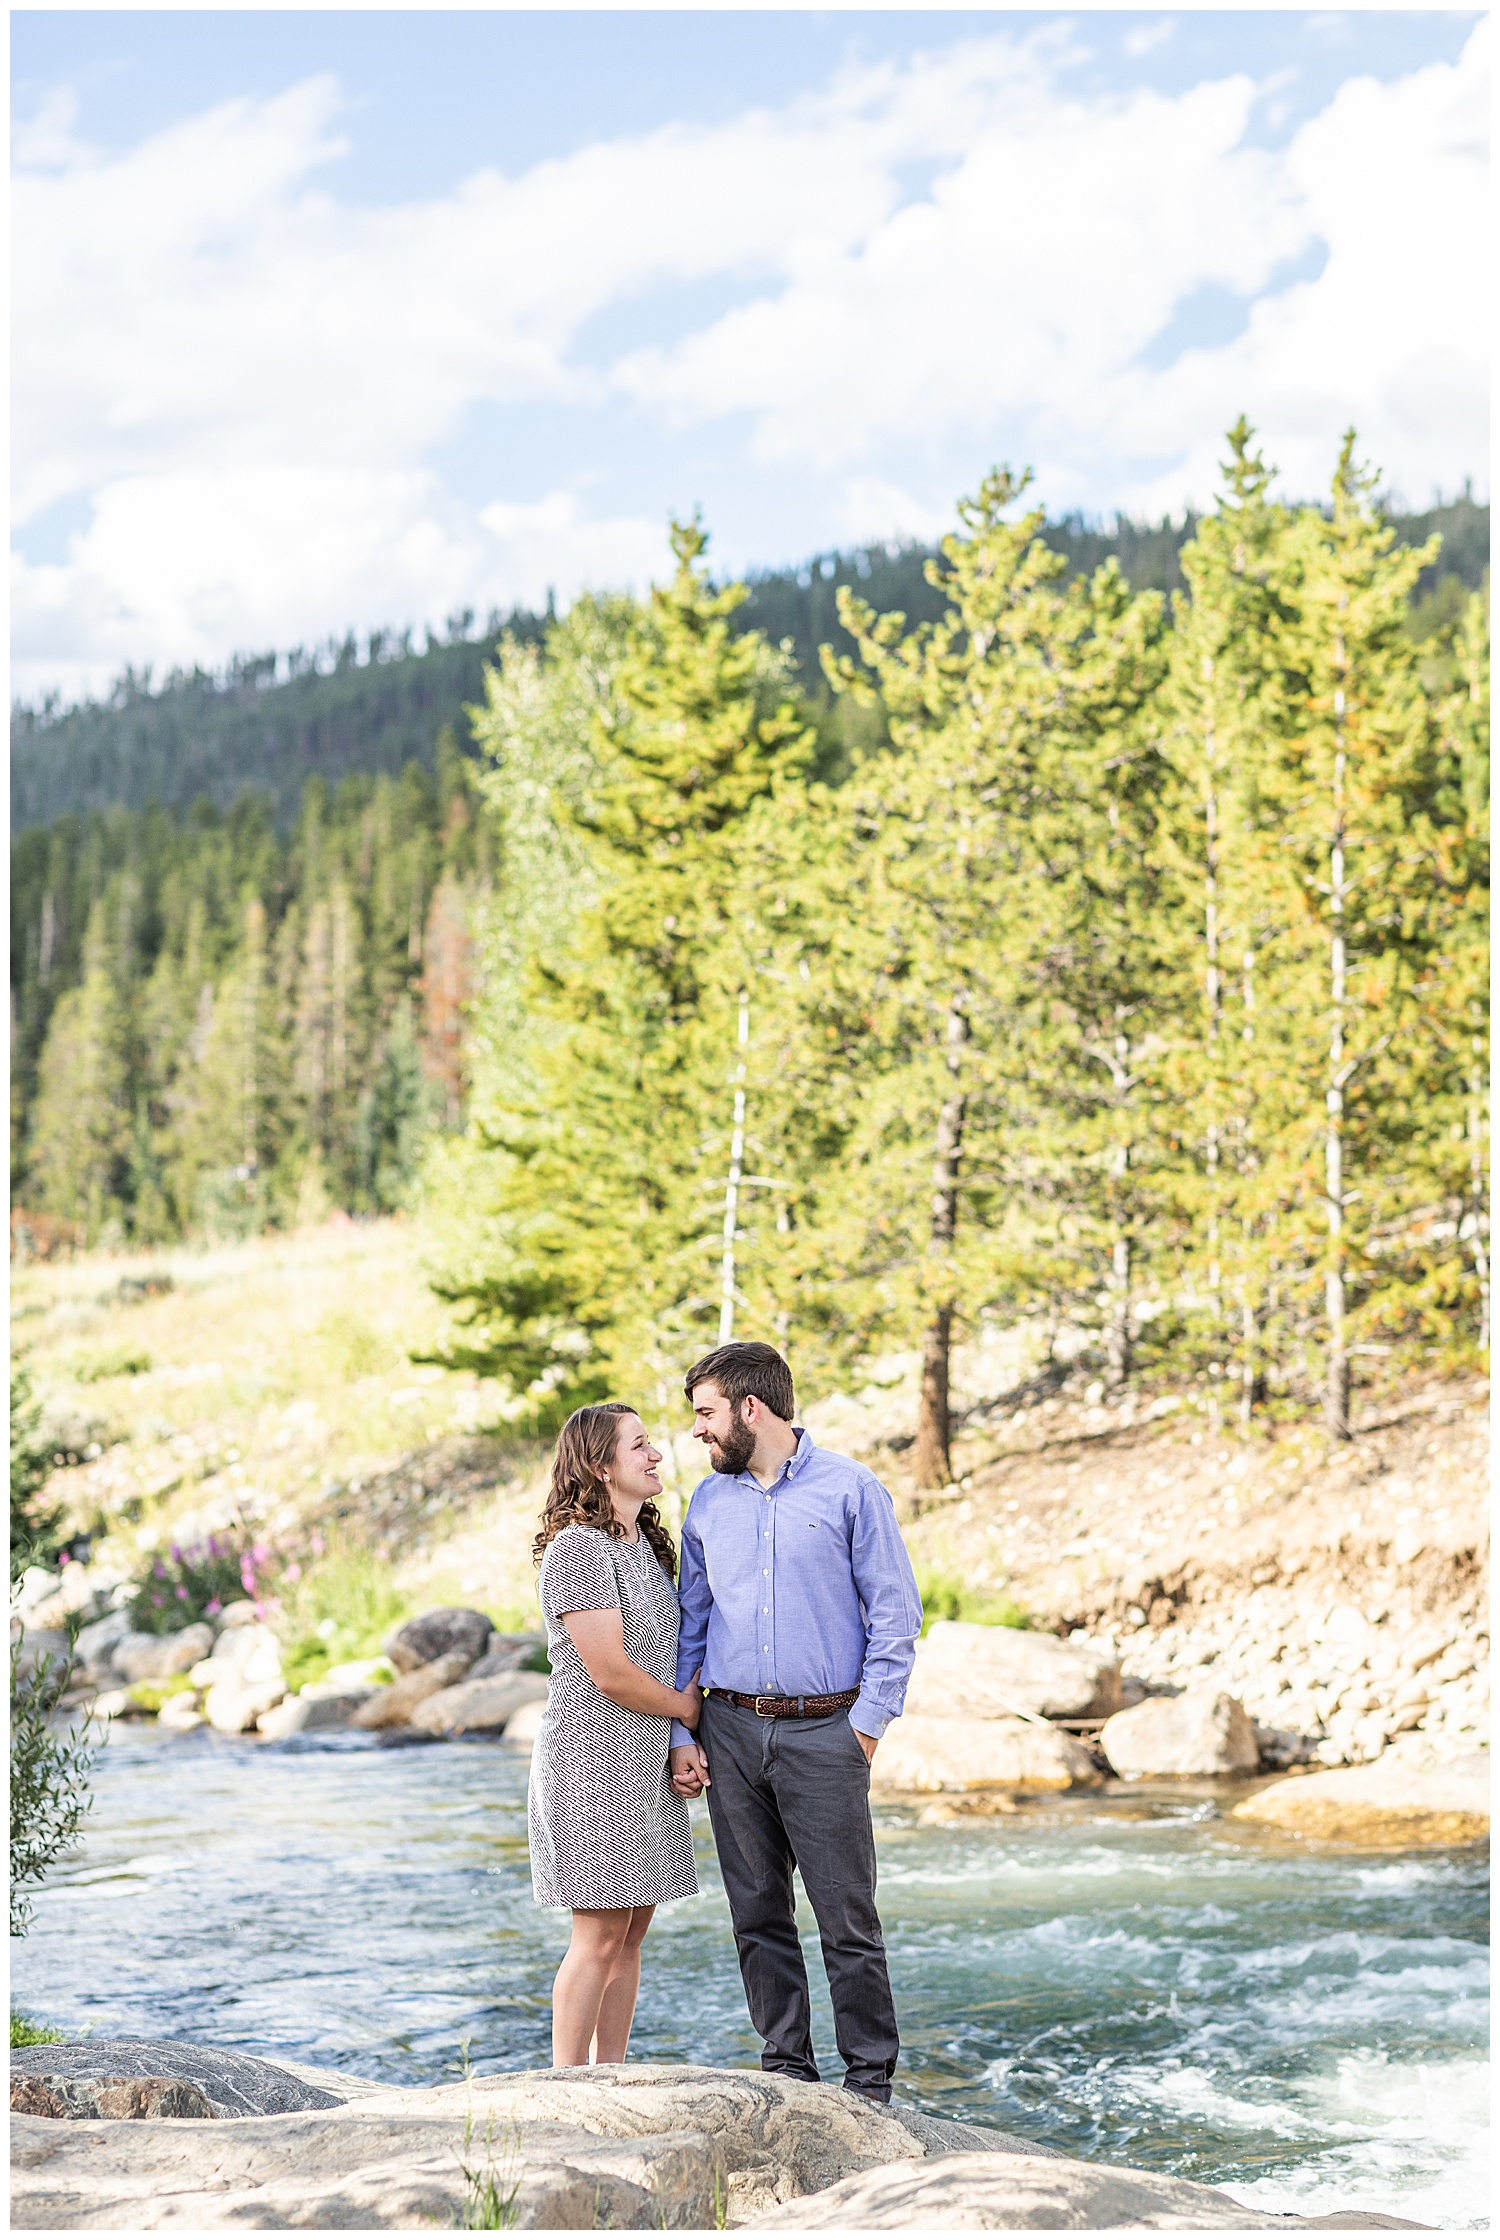 Molly + Ryan Breckenridge Destination Engagement Session Living Radiant Photography_0011.jpg